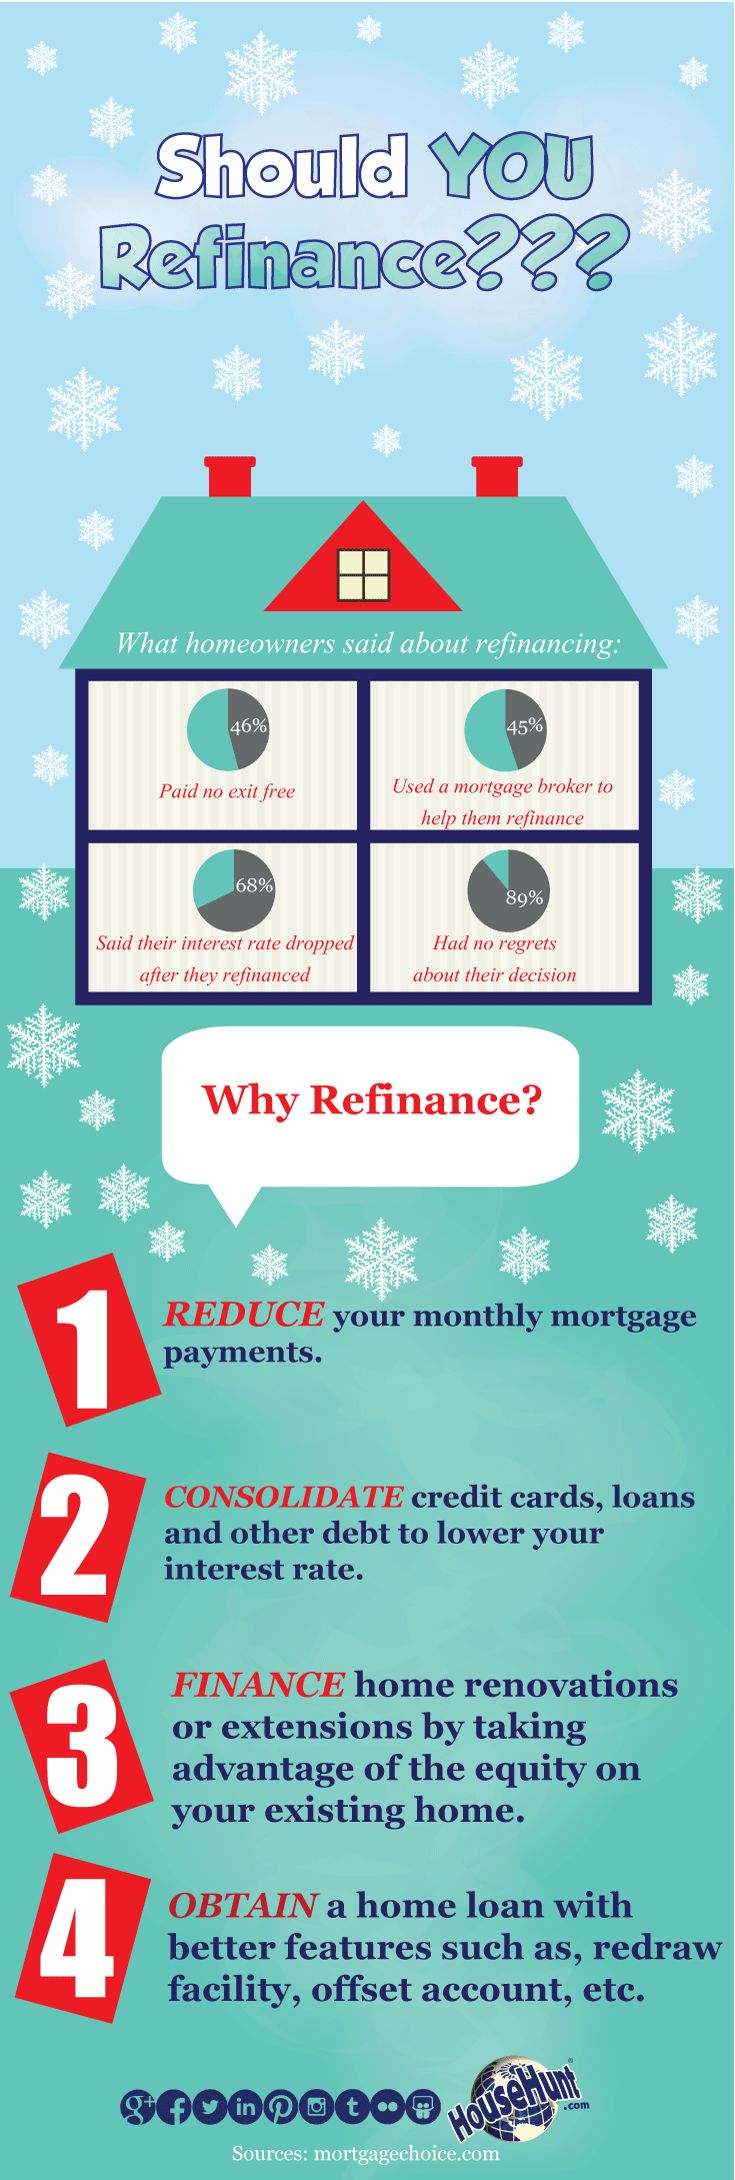 Should you refinance your Northern Virginia home? Mortgage Rates are still at all time lows. Take advantage of refinancing while you can! Contact me for a quote. kstormer@homeownersmtg.com